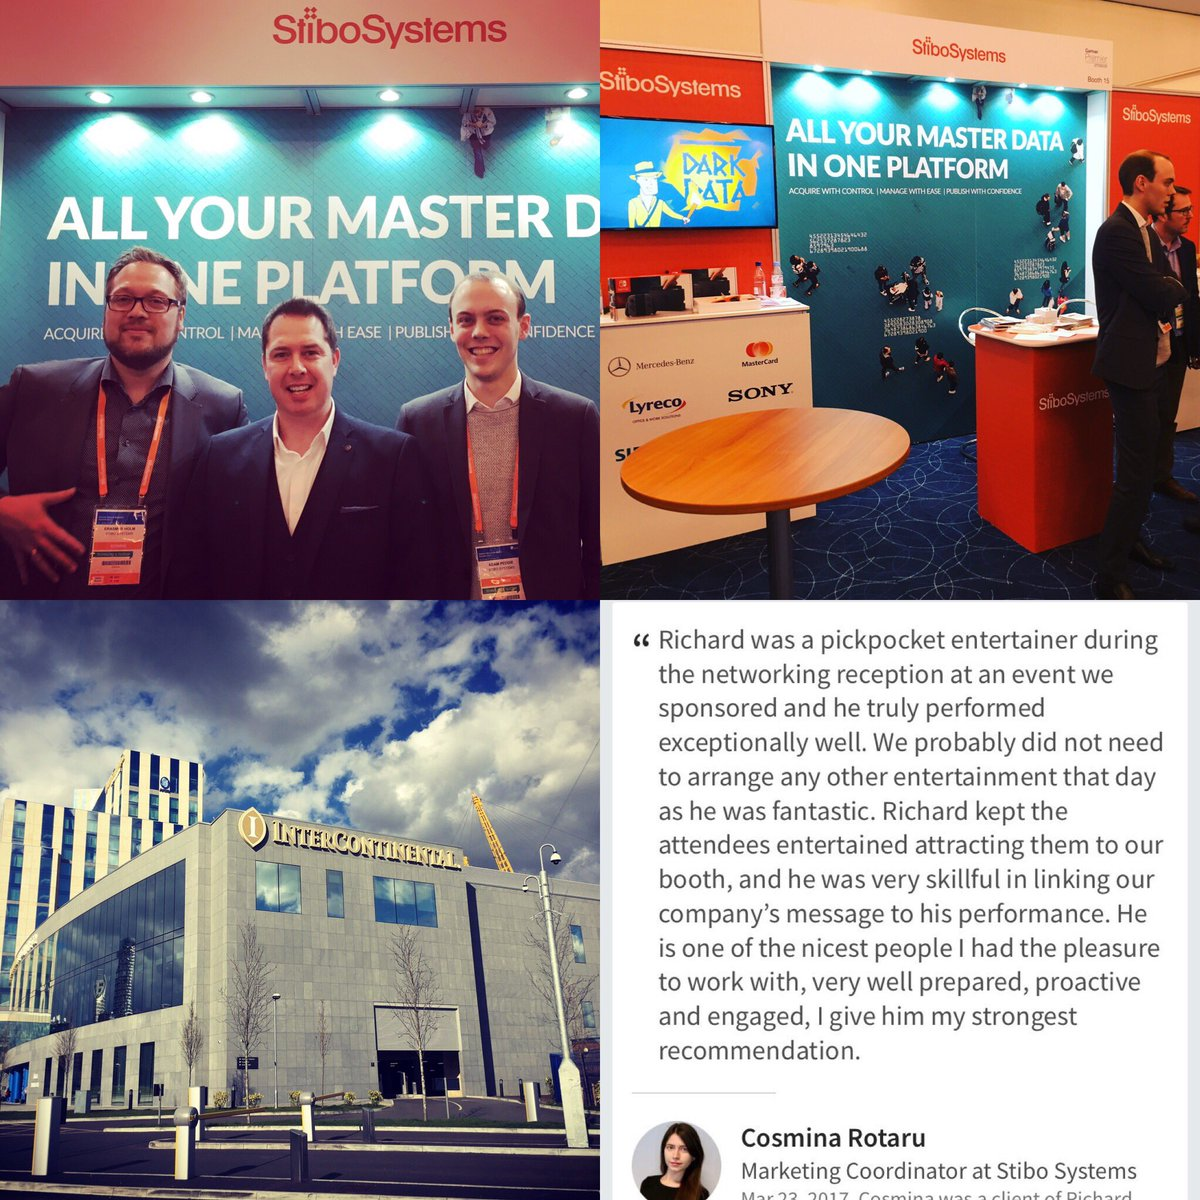 7 reasons to have a magician on YOUR stand #Tradeshowmagician #expo #eventprofs #OnMessage #moreVisitors  http://www. gloucestershiremagician.co.uk/hire-a-trade-s how-magician.html &nbsp; … <br>http://pic.twitter.com/1nvtHXPVyK